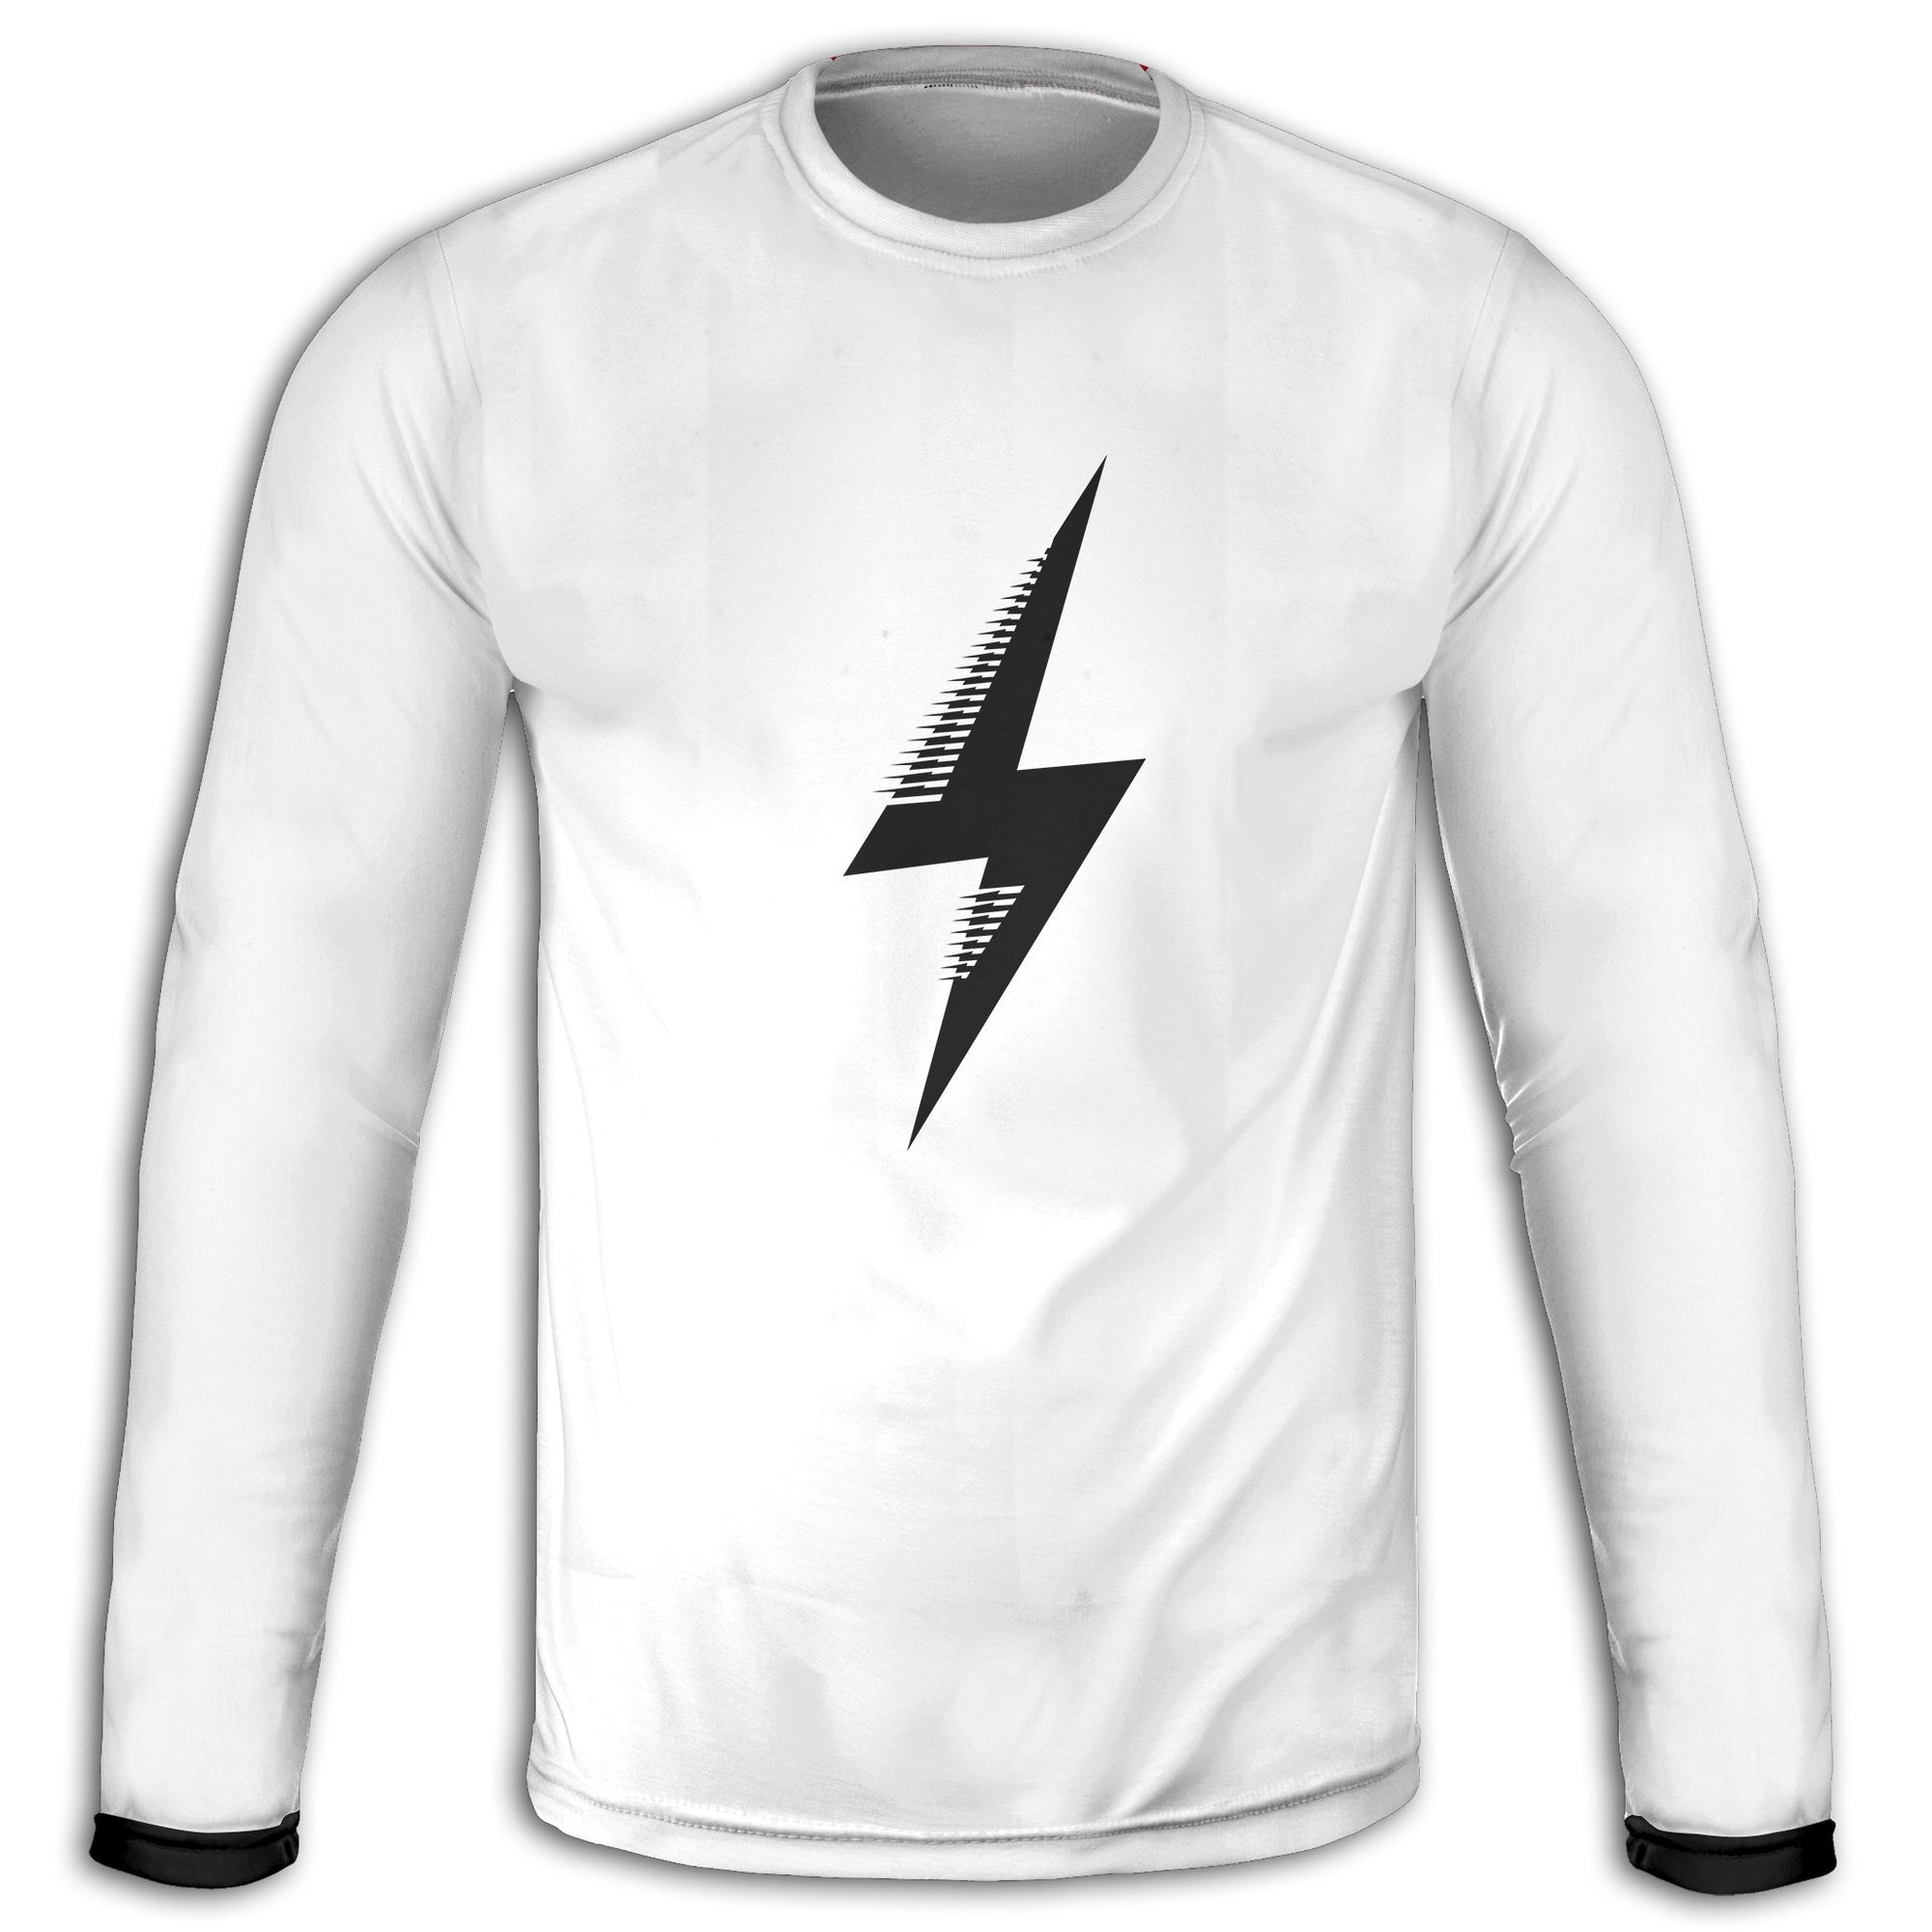 Bolt Long Sleeve Tee | flashgordonshop.com